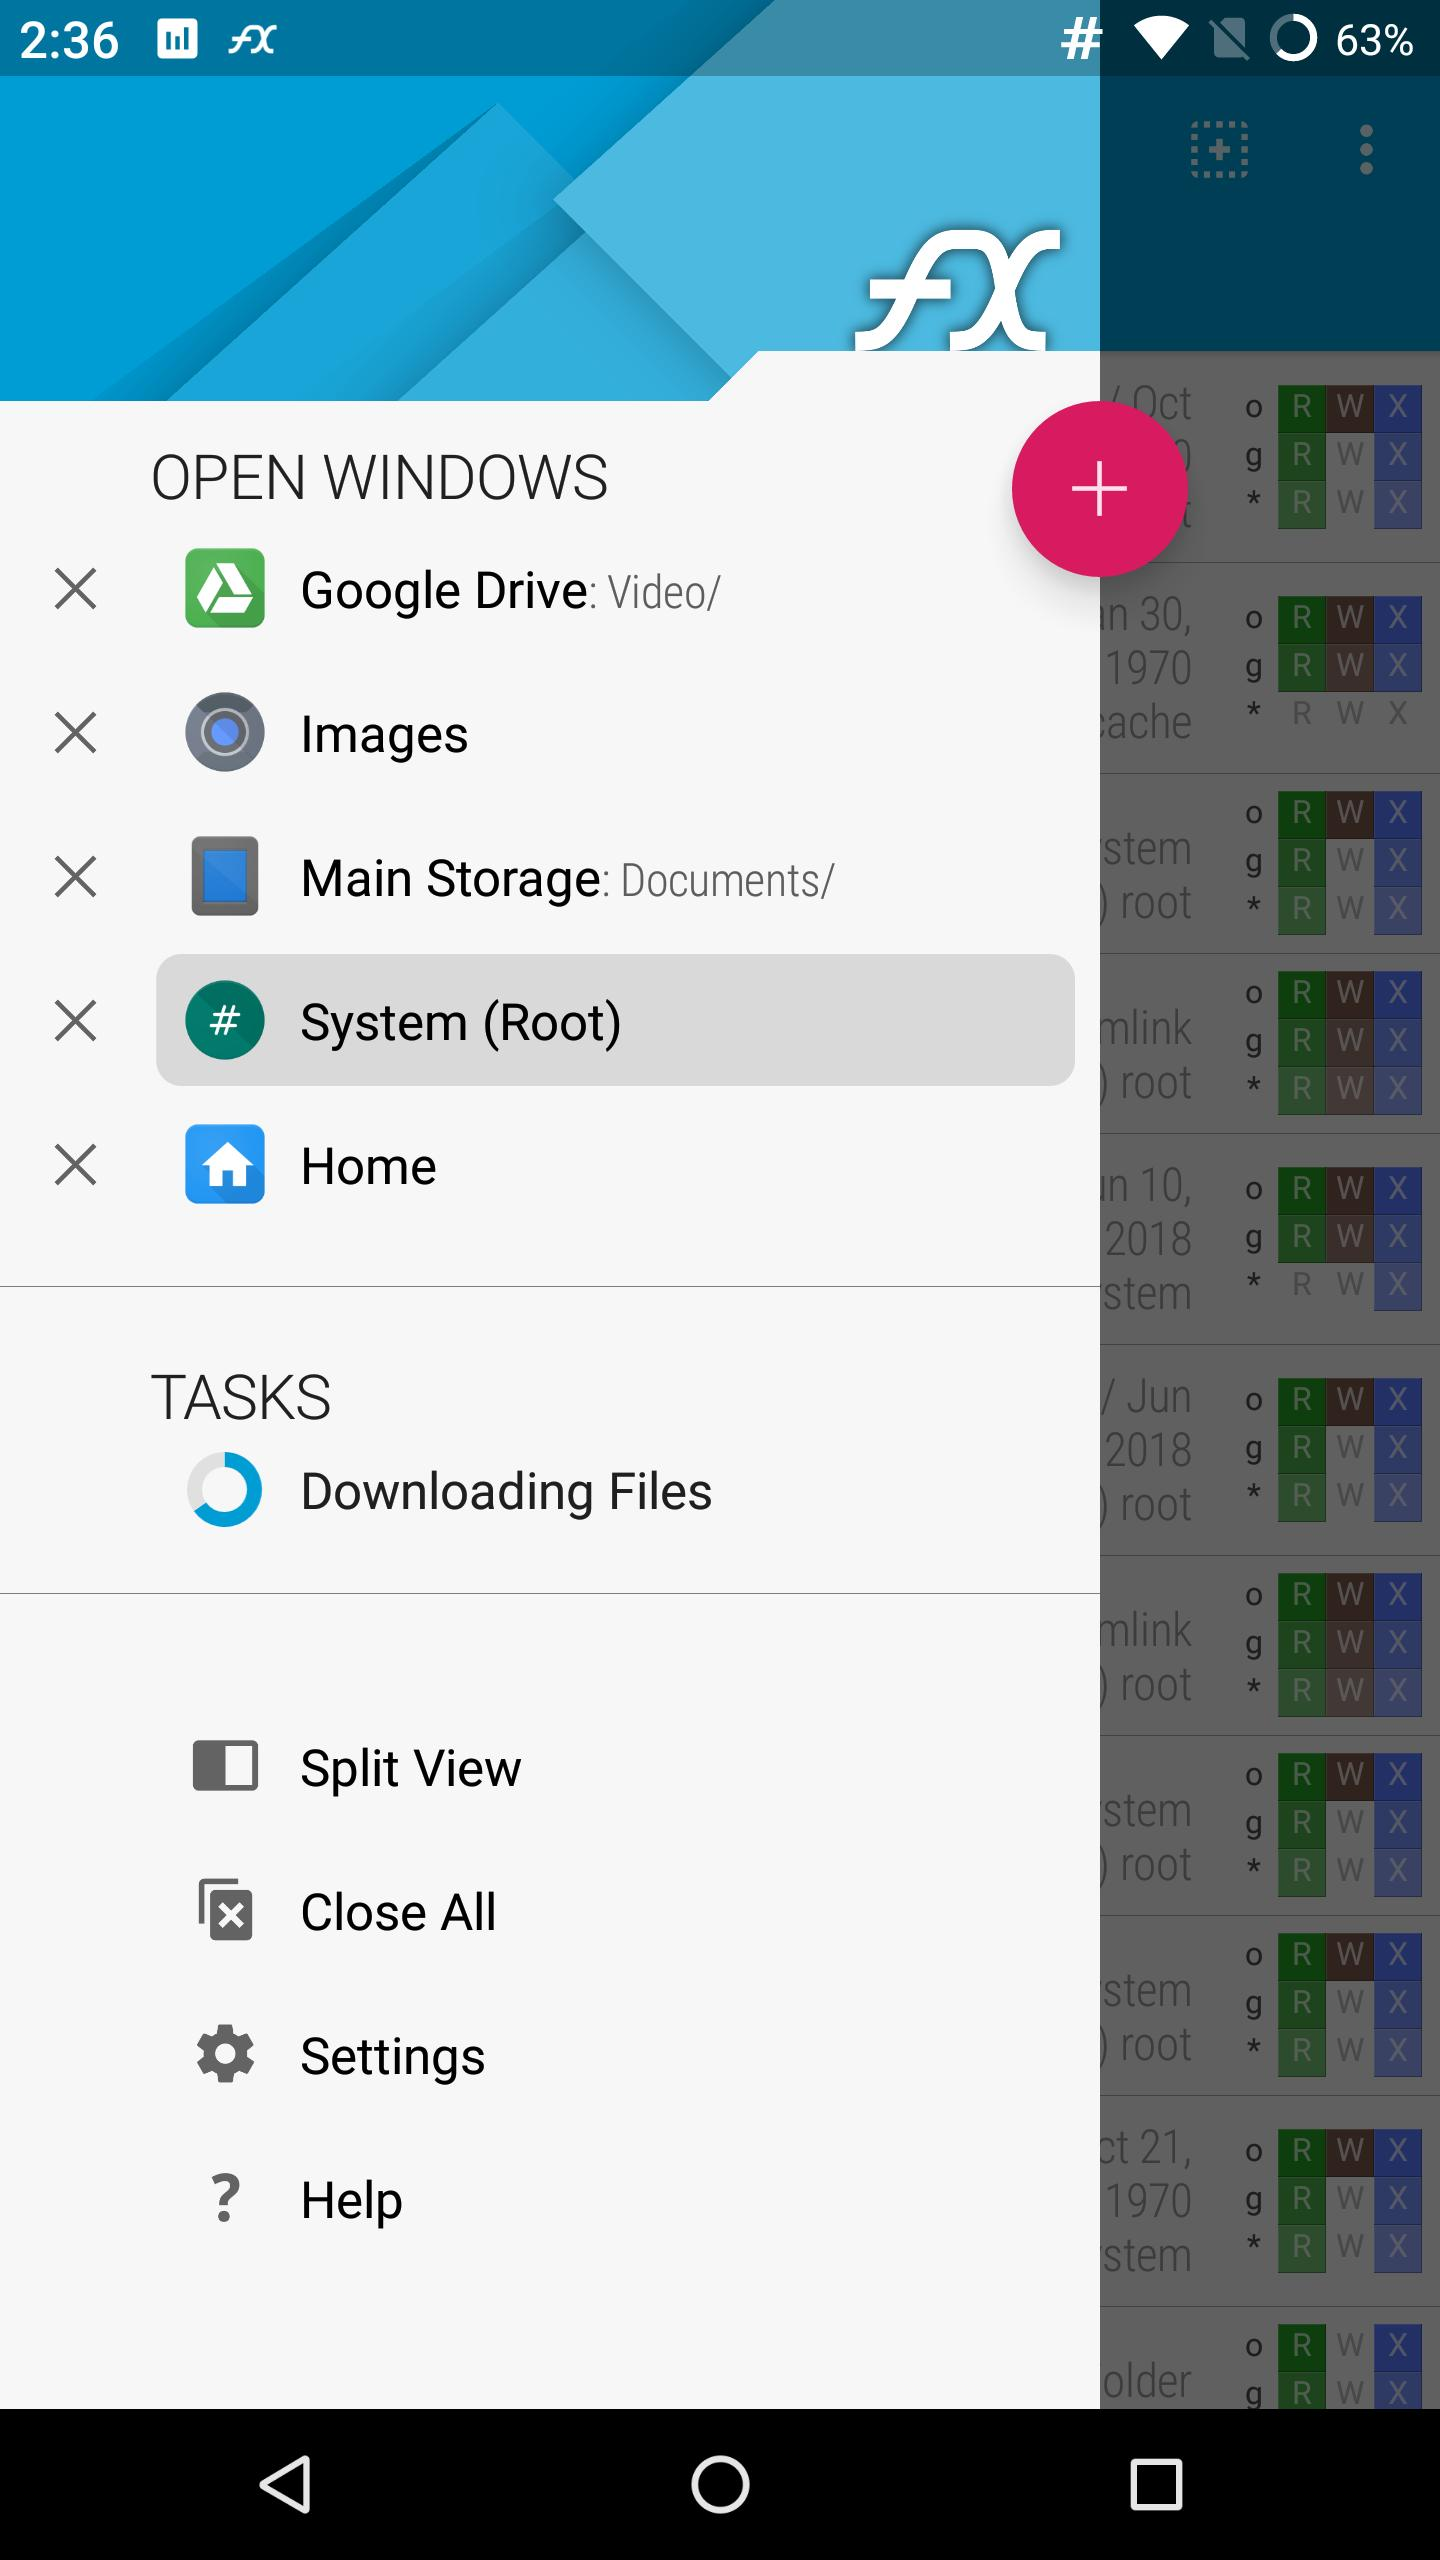 FX File Explorer: The file manager with privacy 8.0.1.0 Screenshot 3